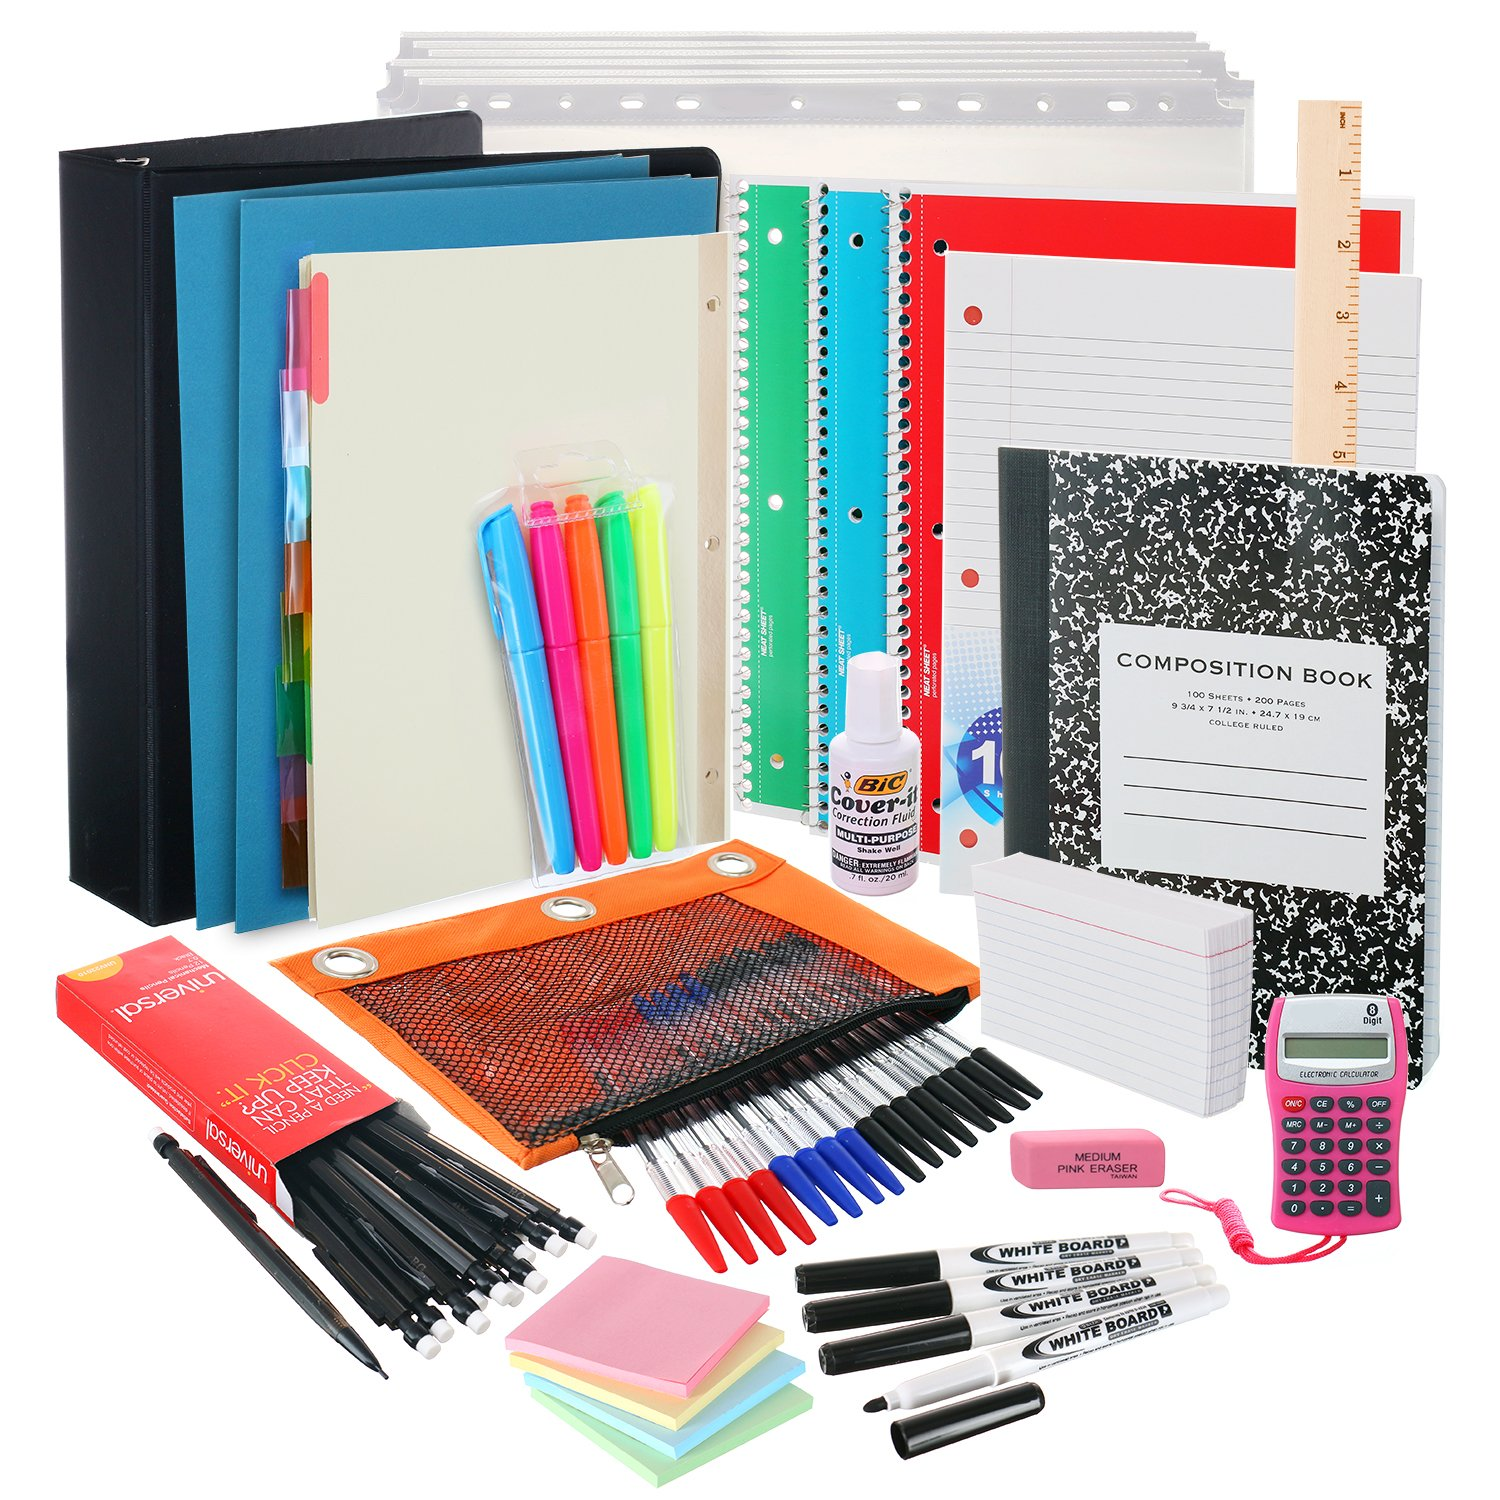 Back to School Supplies Kit for College Students: The Complete Classroom Supply Bundle - Set of 20 College School Essentials - College Ruled Paper, Pens, Pencils, Notebooks & More Stuff